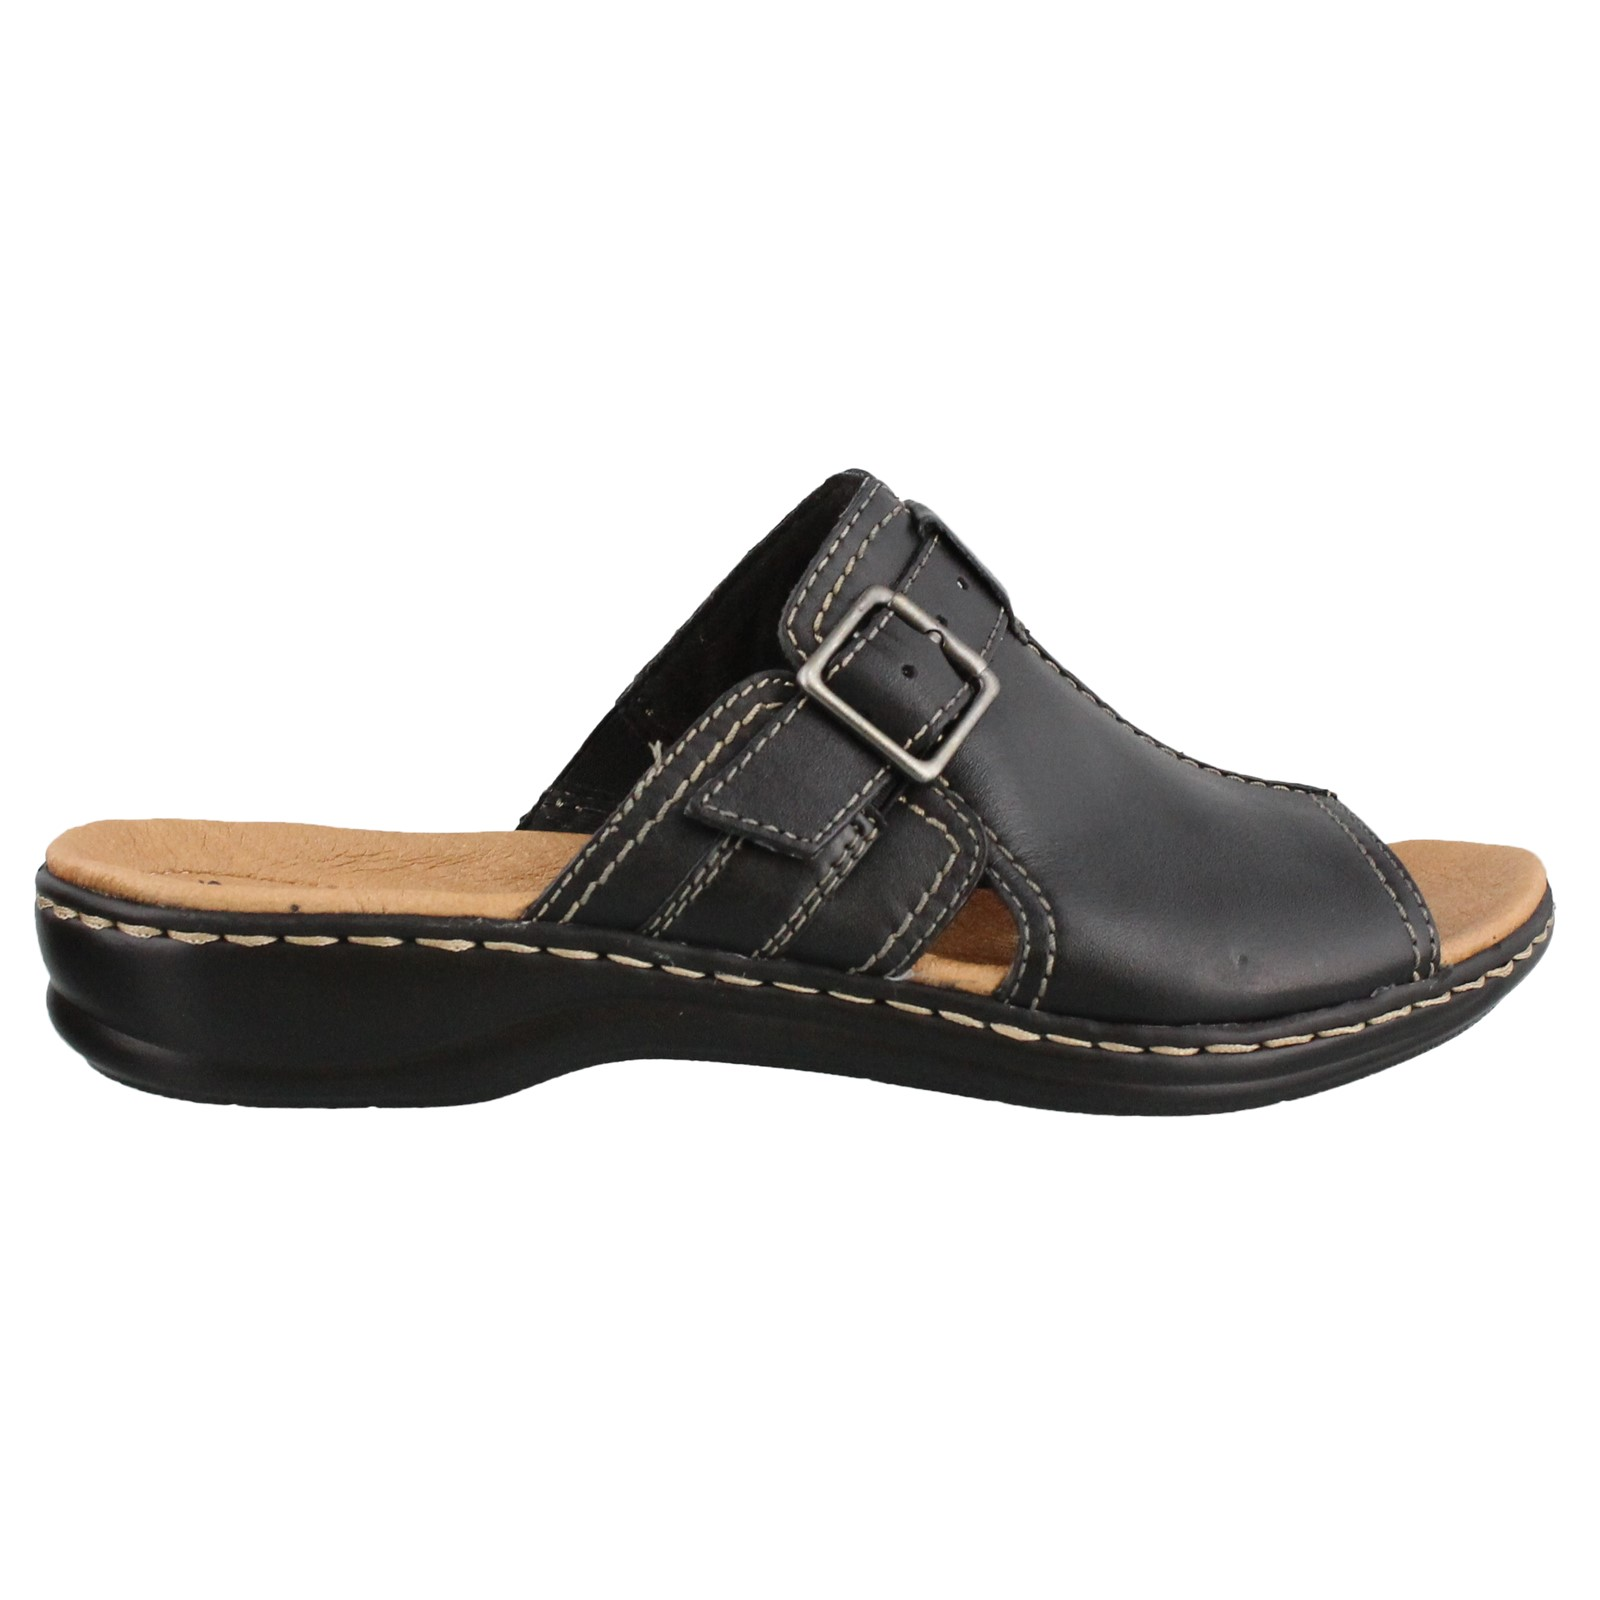 Women's Clarks, Leisa Gianna Slide Sandal